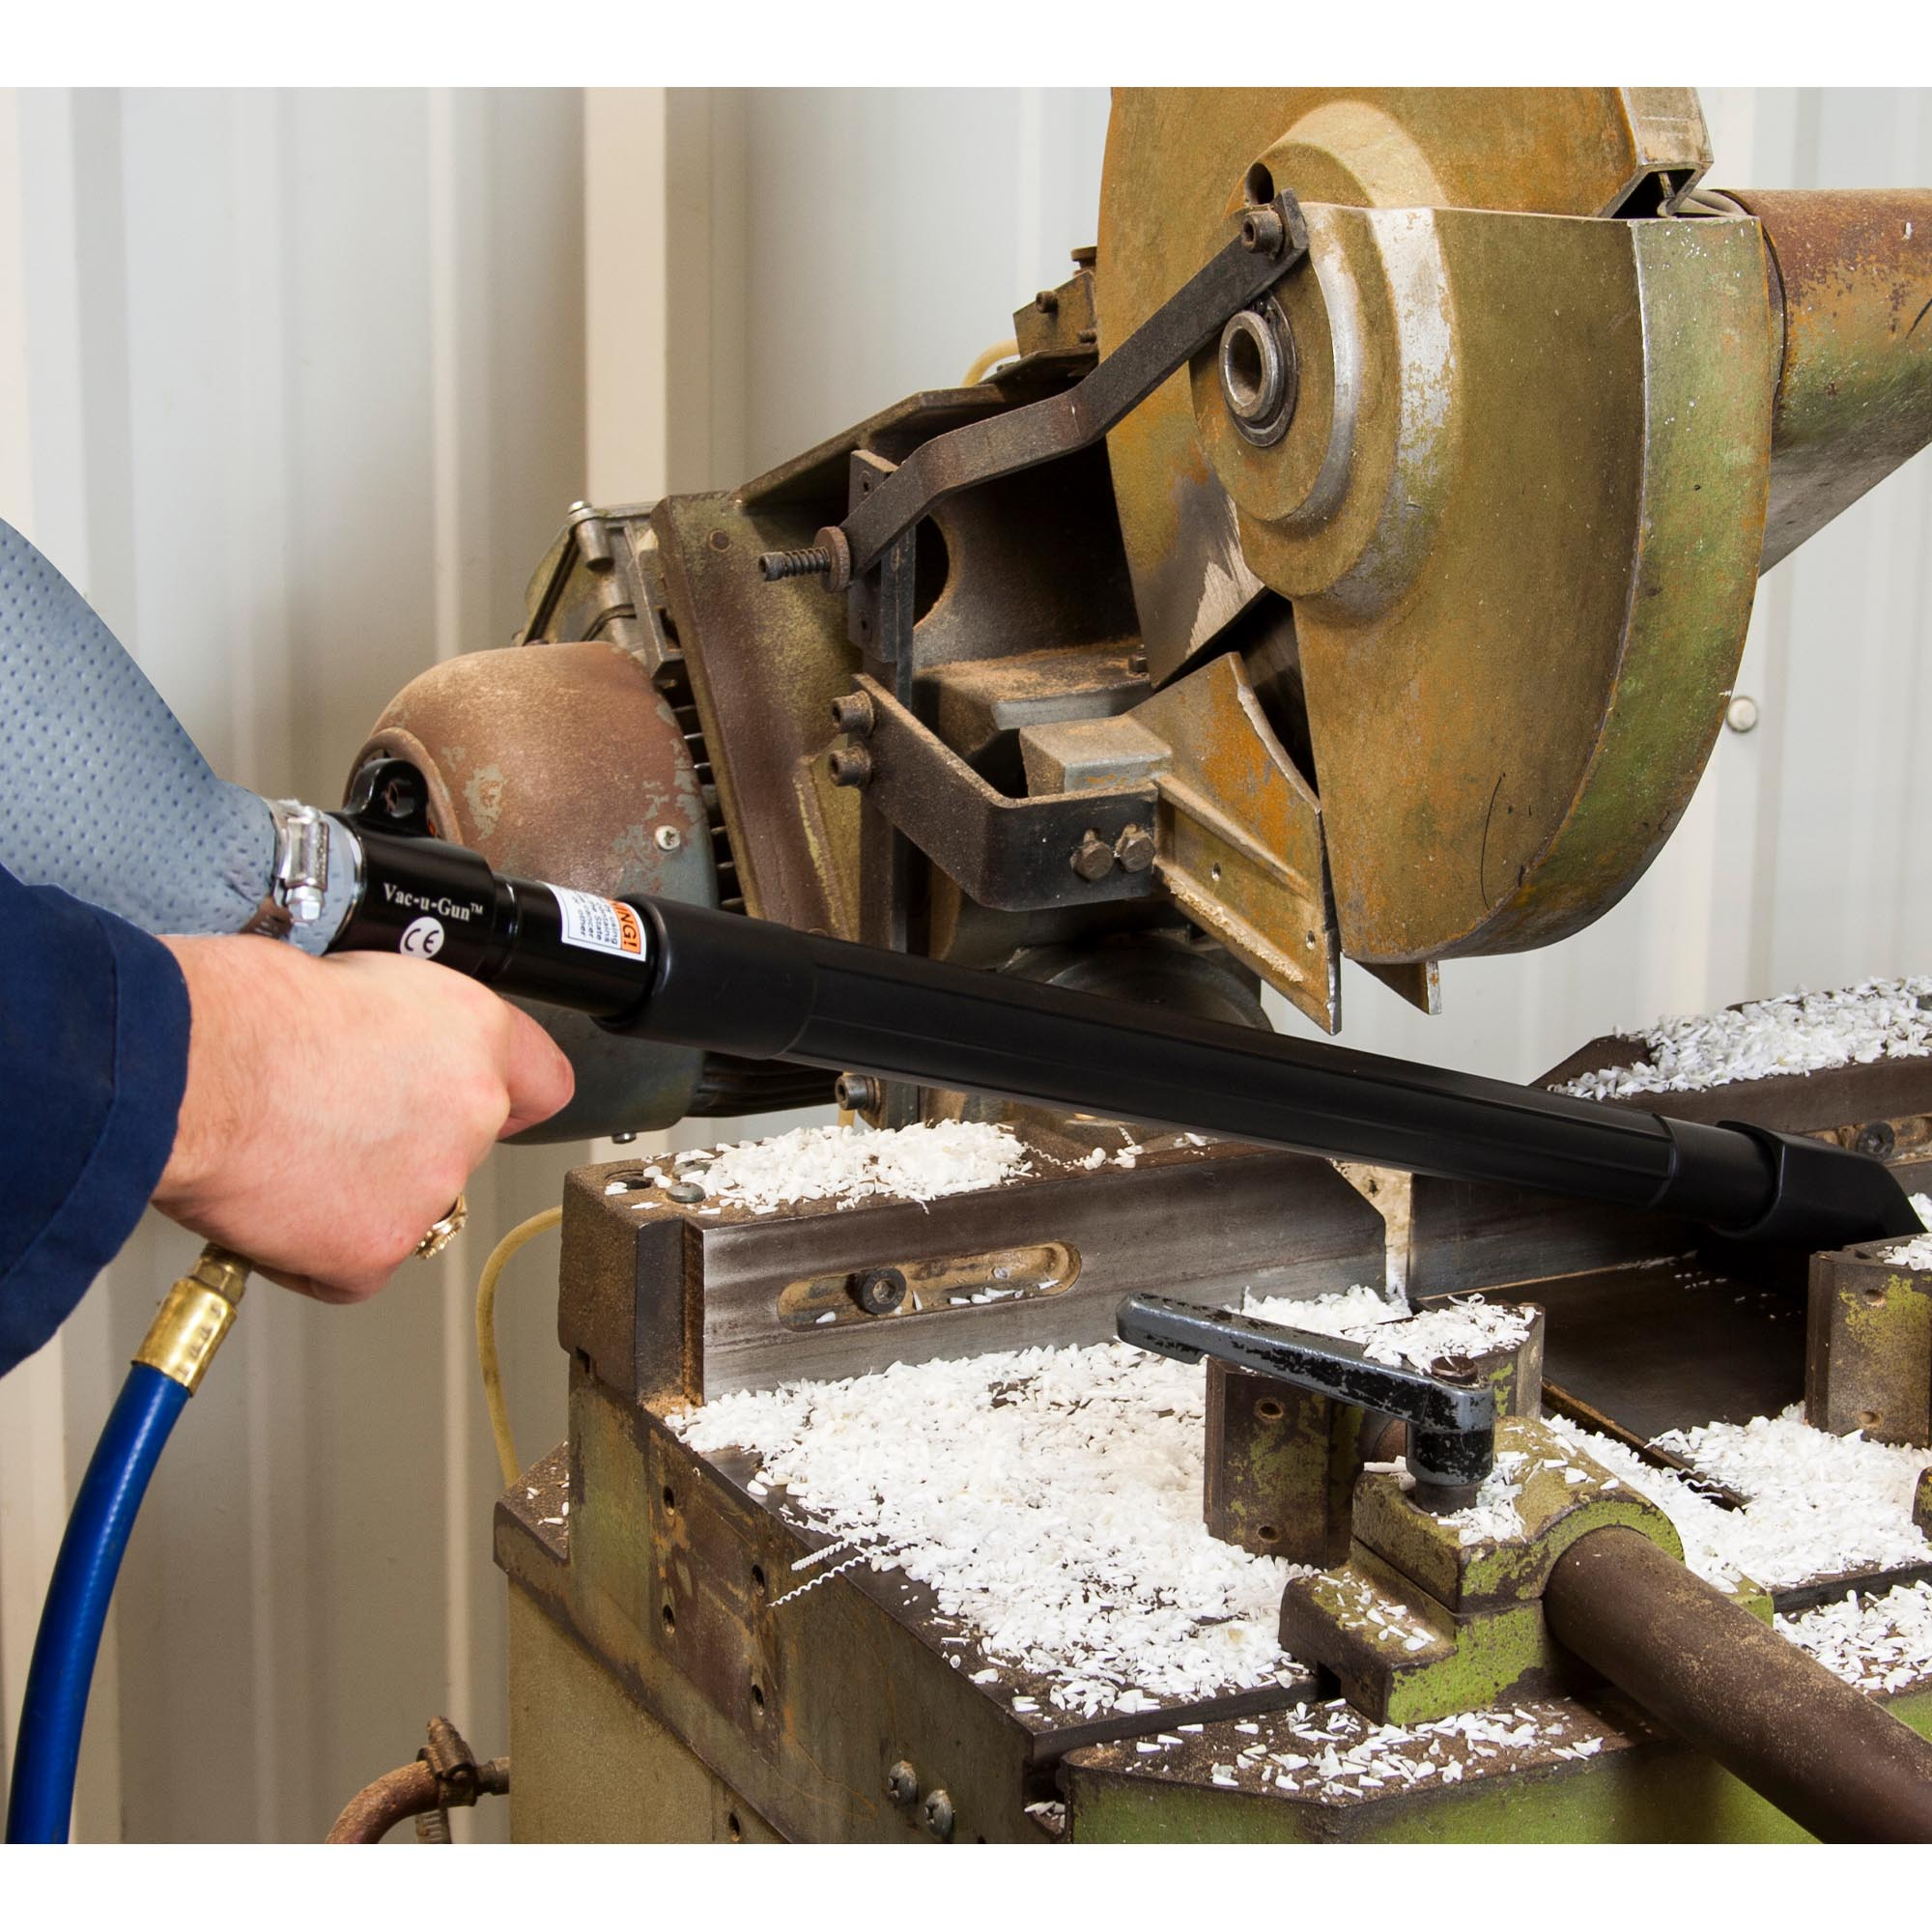 A Vac-u-Gun easily removes chips from a saw cutting process.